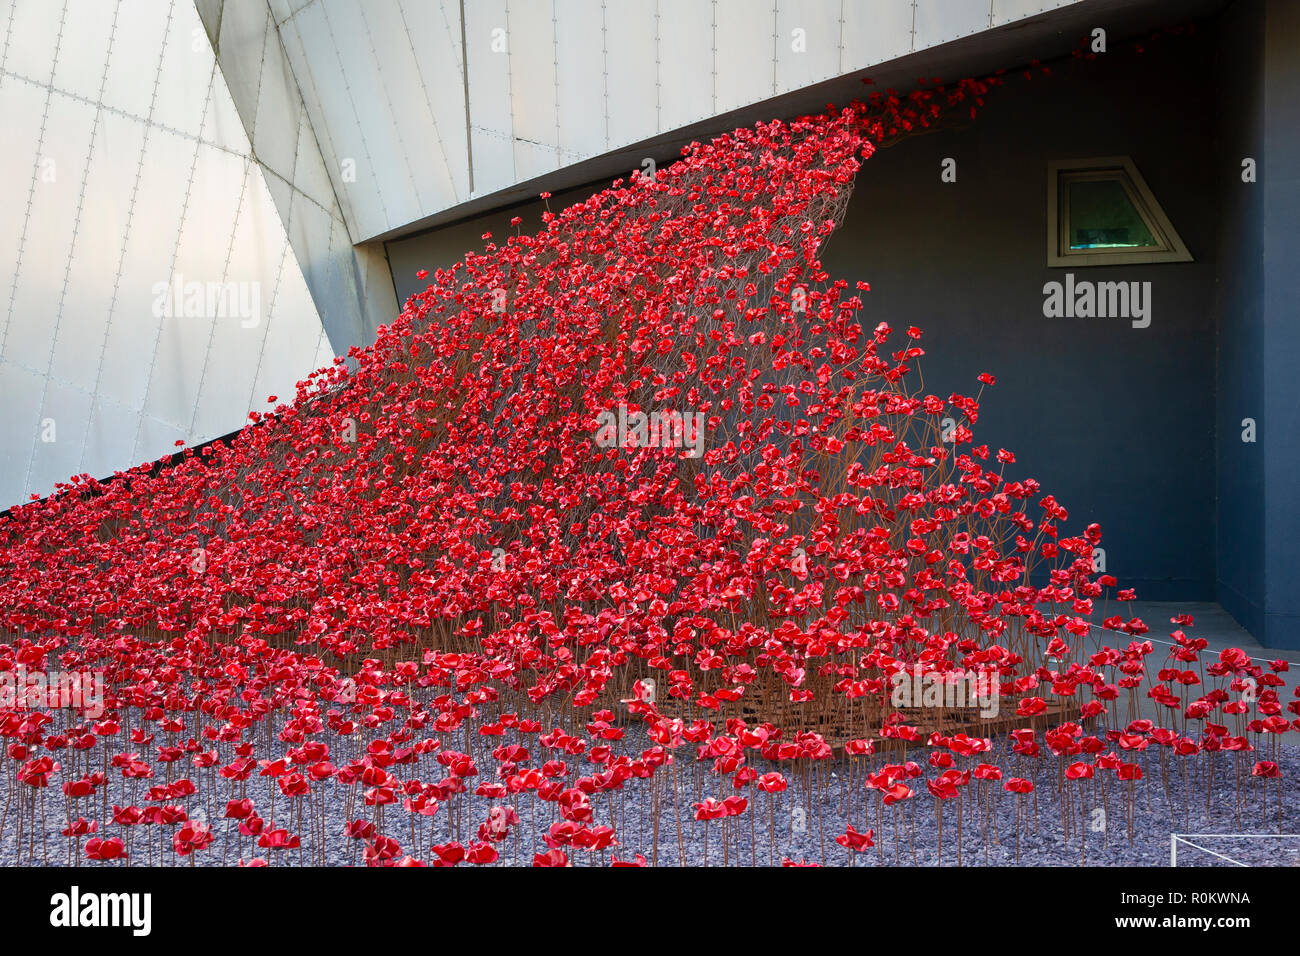 Poppies Wave, by Paul Cummins and Tom Piper. pat of The Poppies Tour at the Imperial War Museum North in Salford Quays. - Stock Image